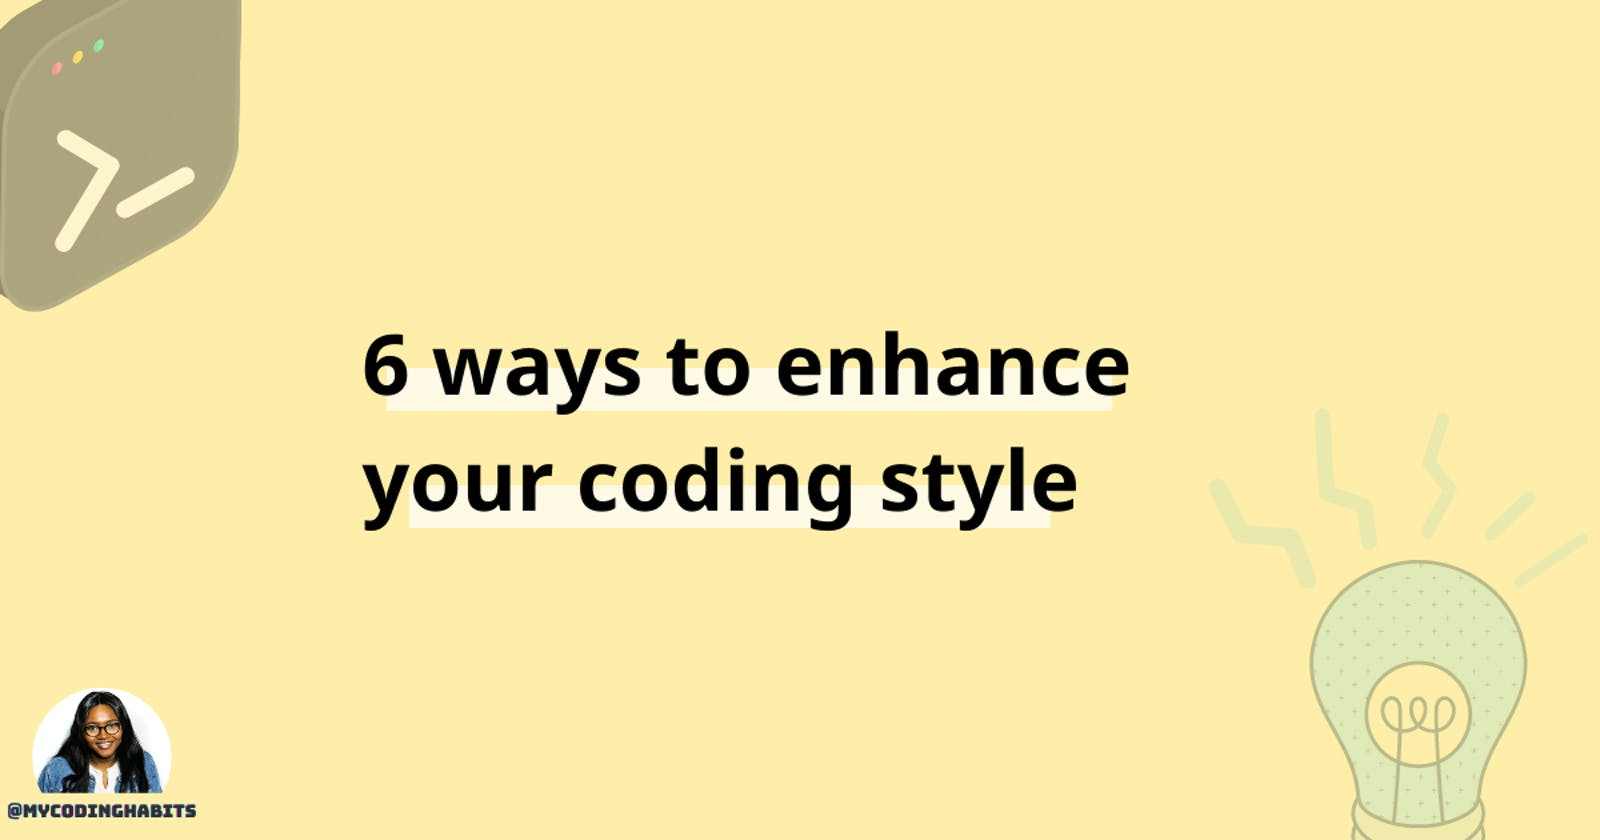 6 ways to improve your coding style